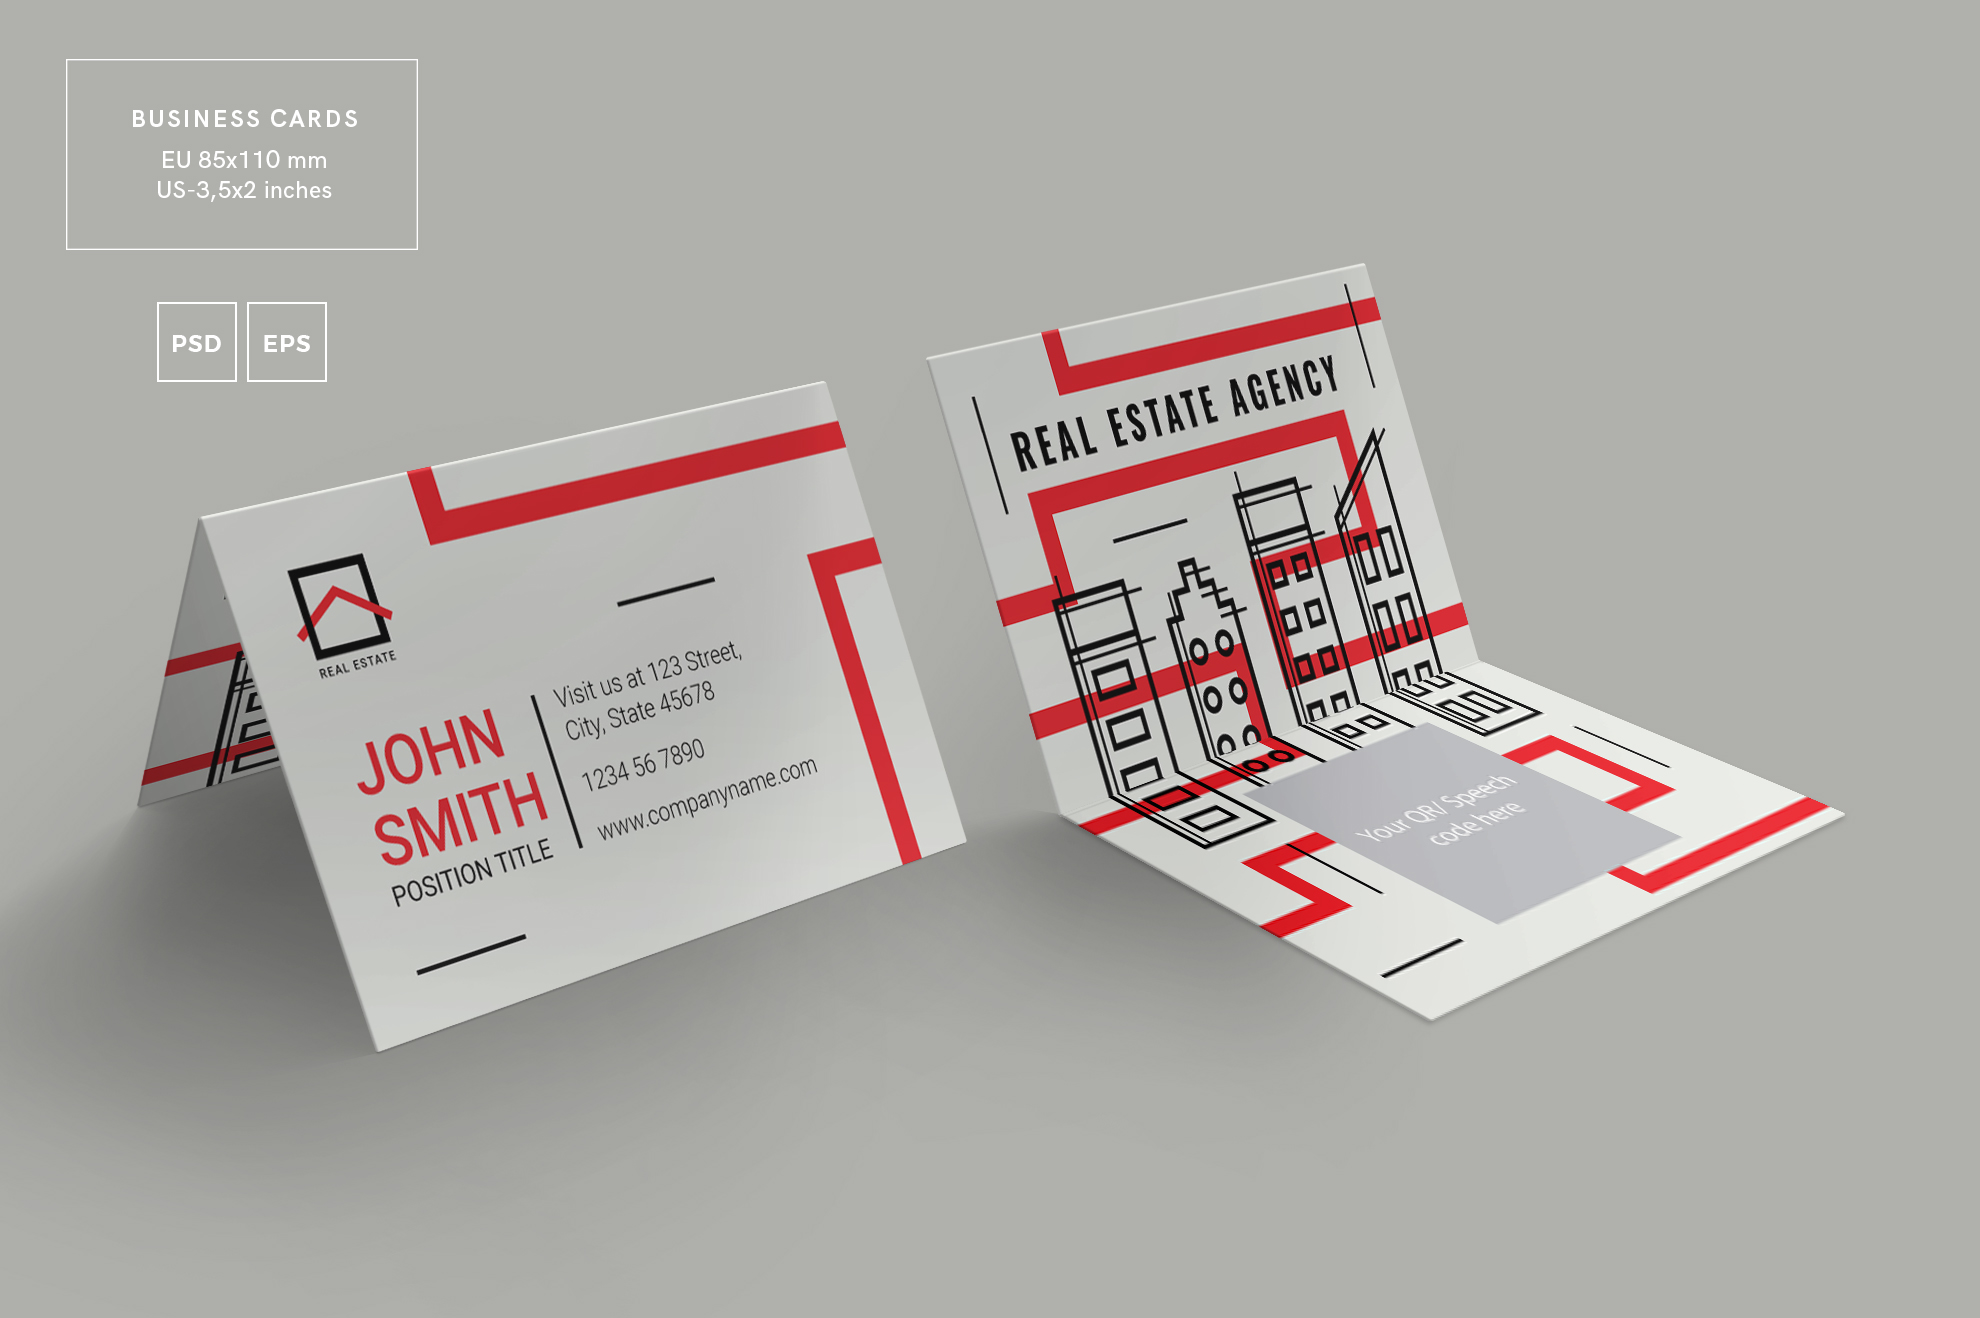 Real estate agency business card design templates kit real estate agency business card design templates kit example image 3 accmission Image collections